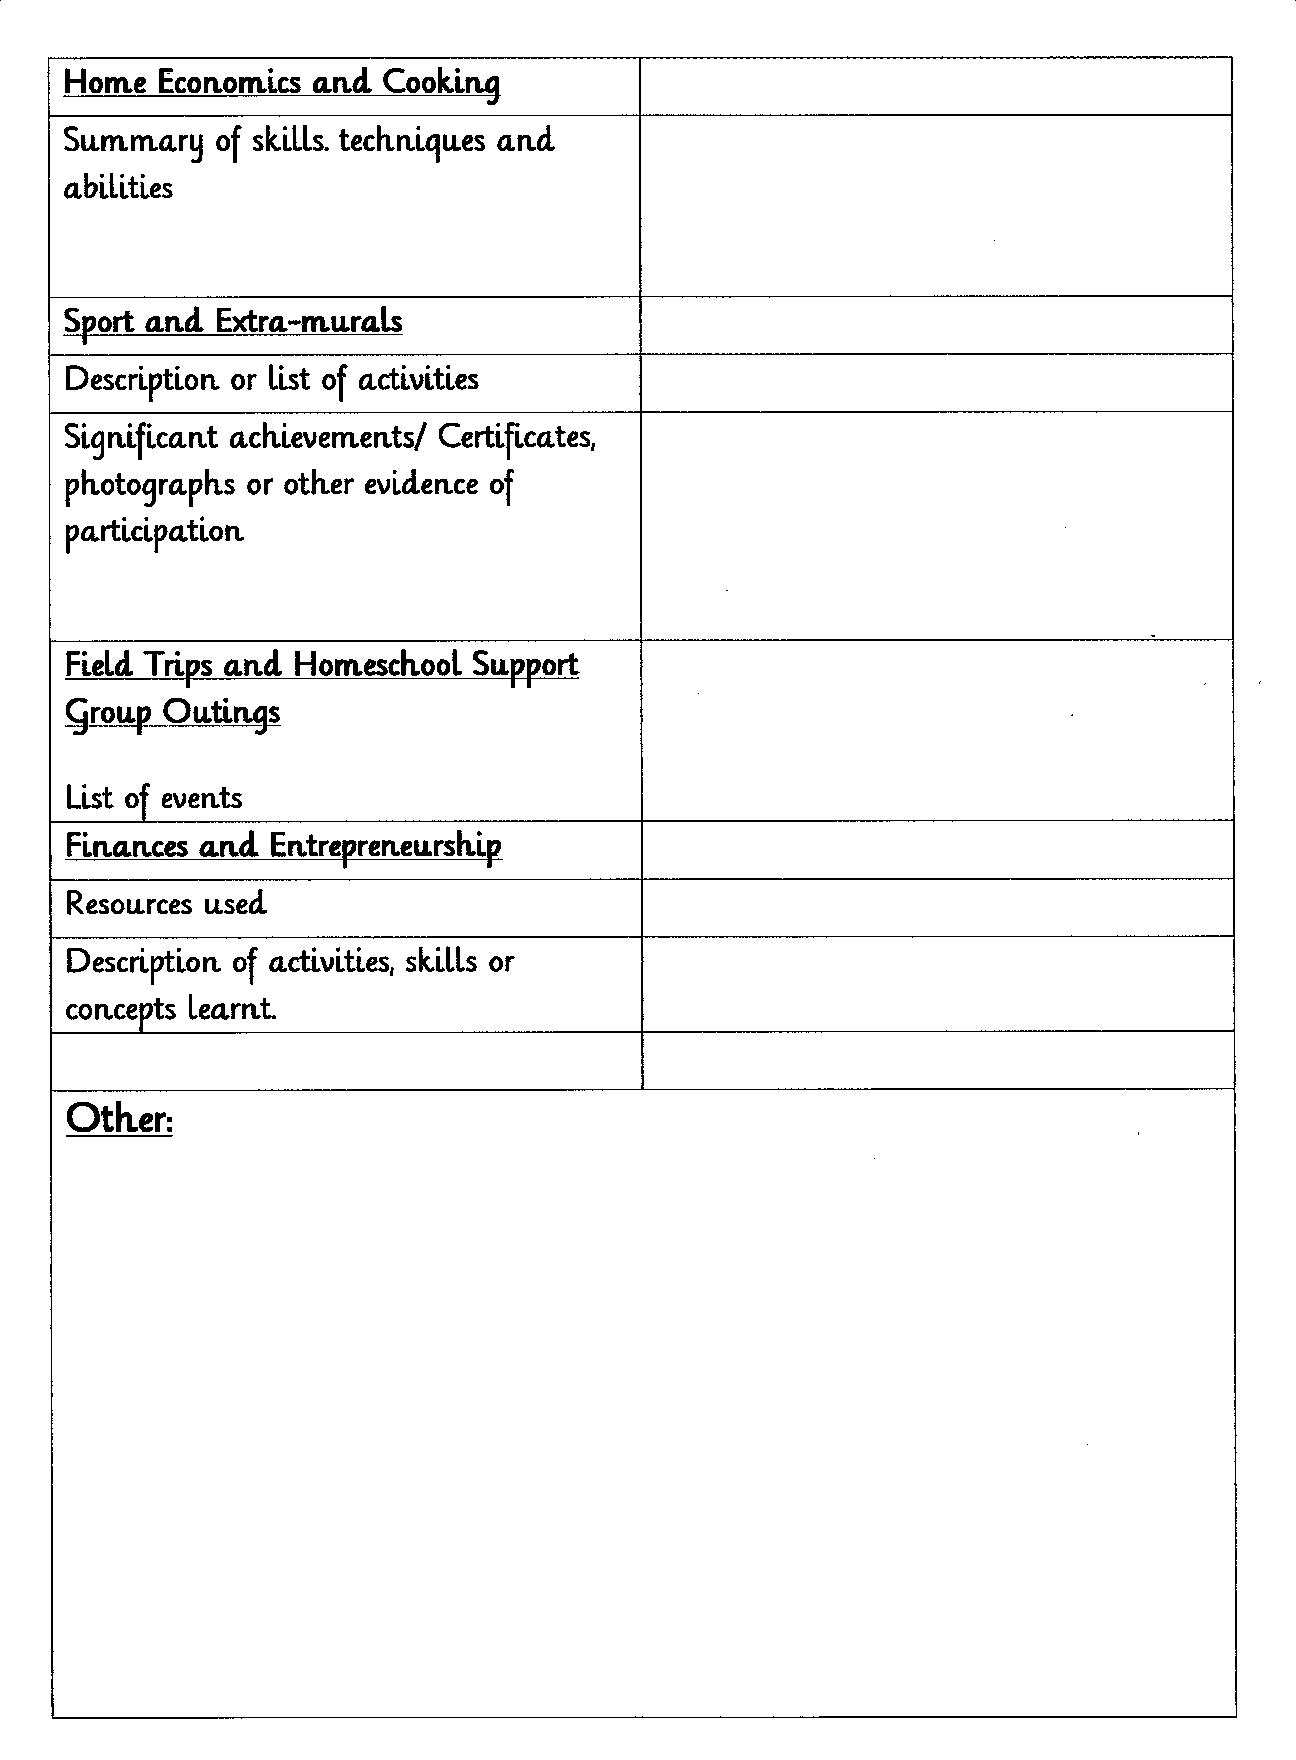 Report and Evaluation Pages   Practical Pages